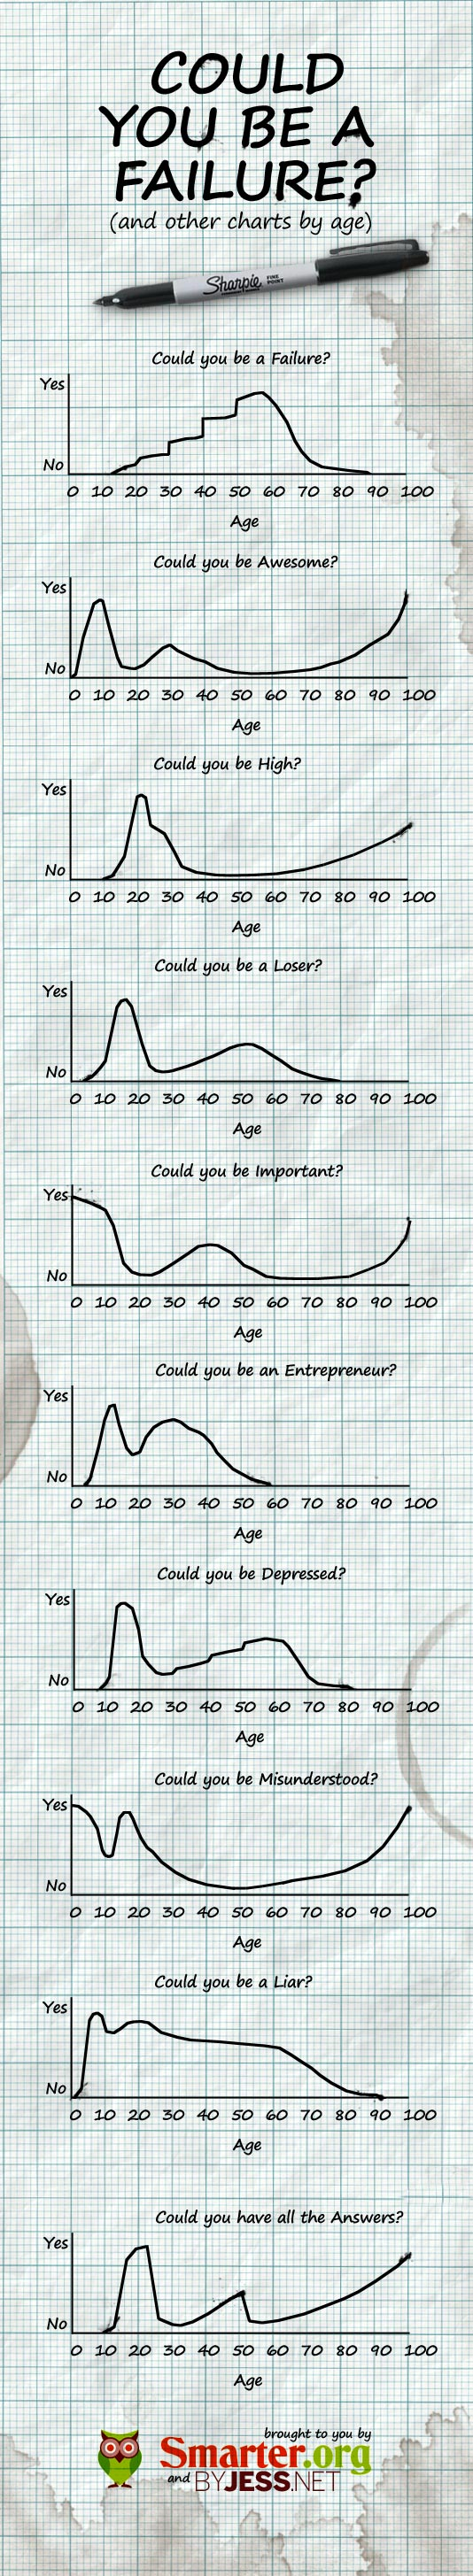 Failure & other fun charts.